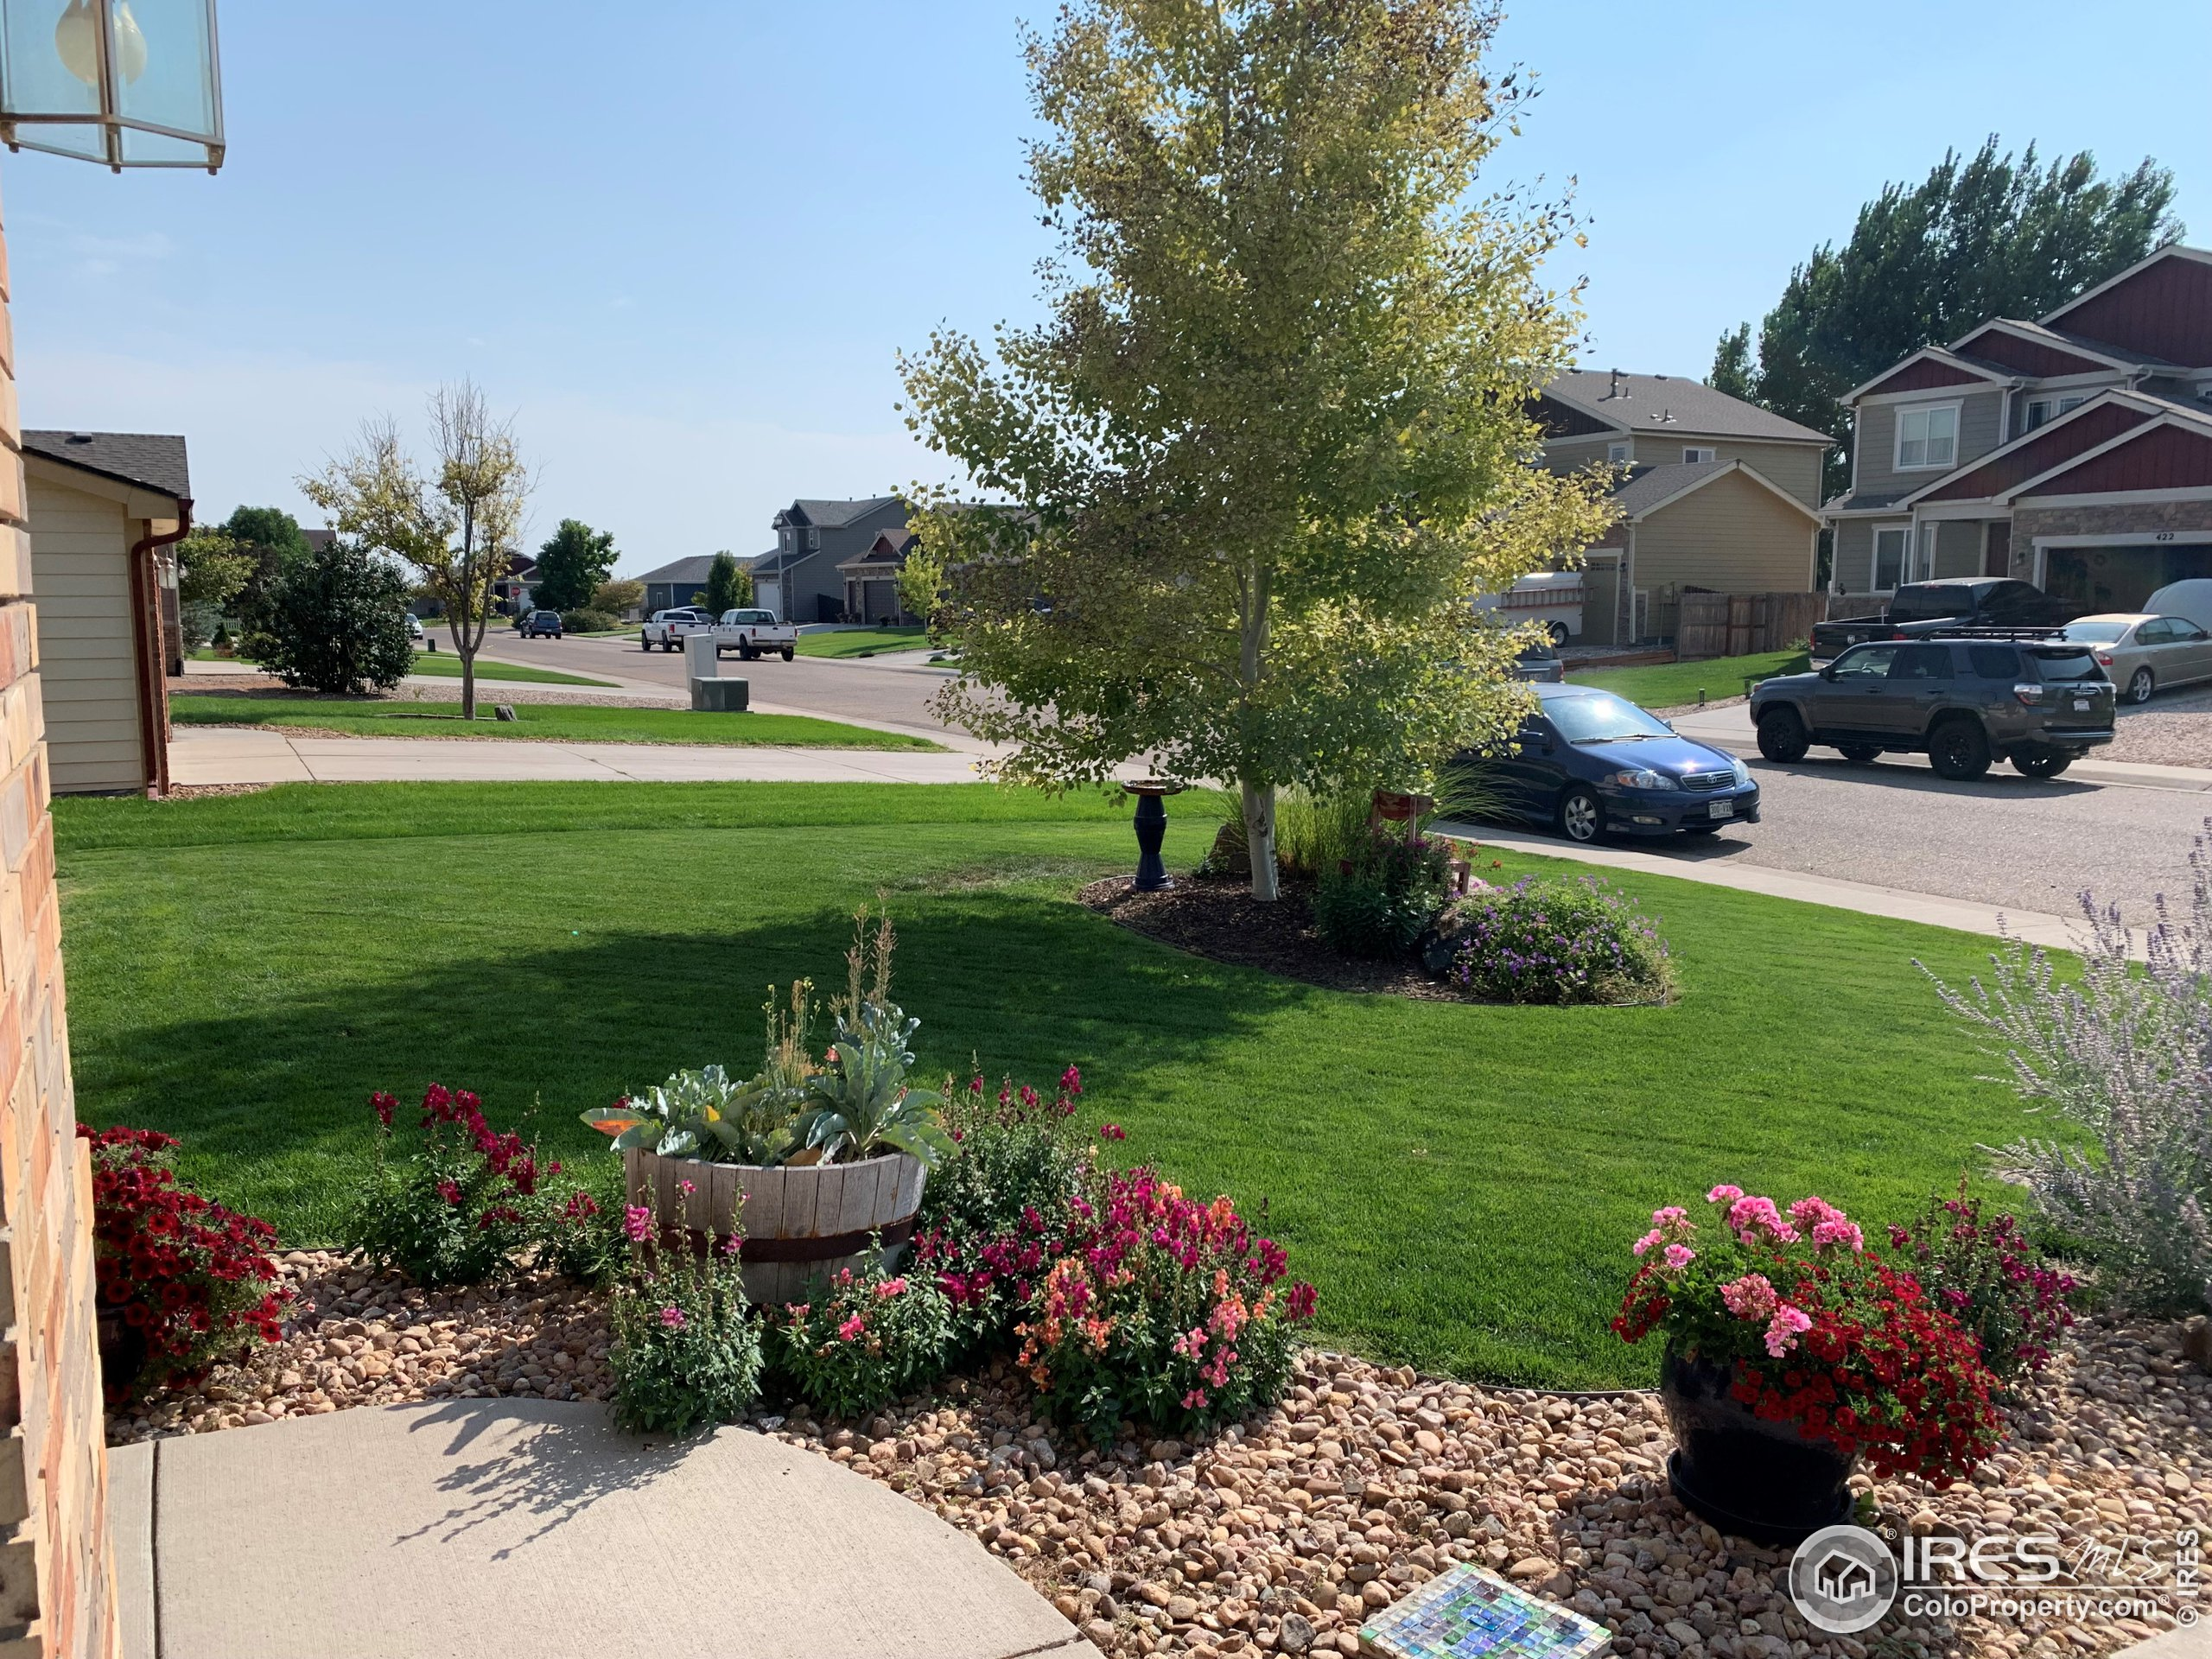 This beautiful curb appeal makes this home the gem of the neighborhood.